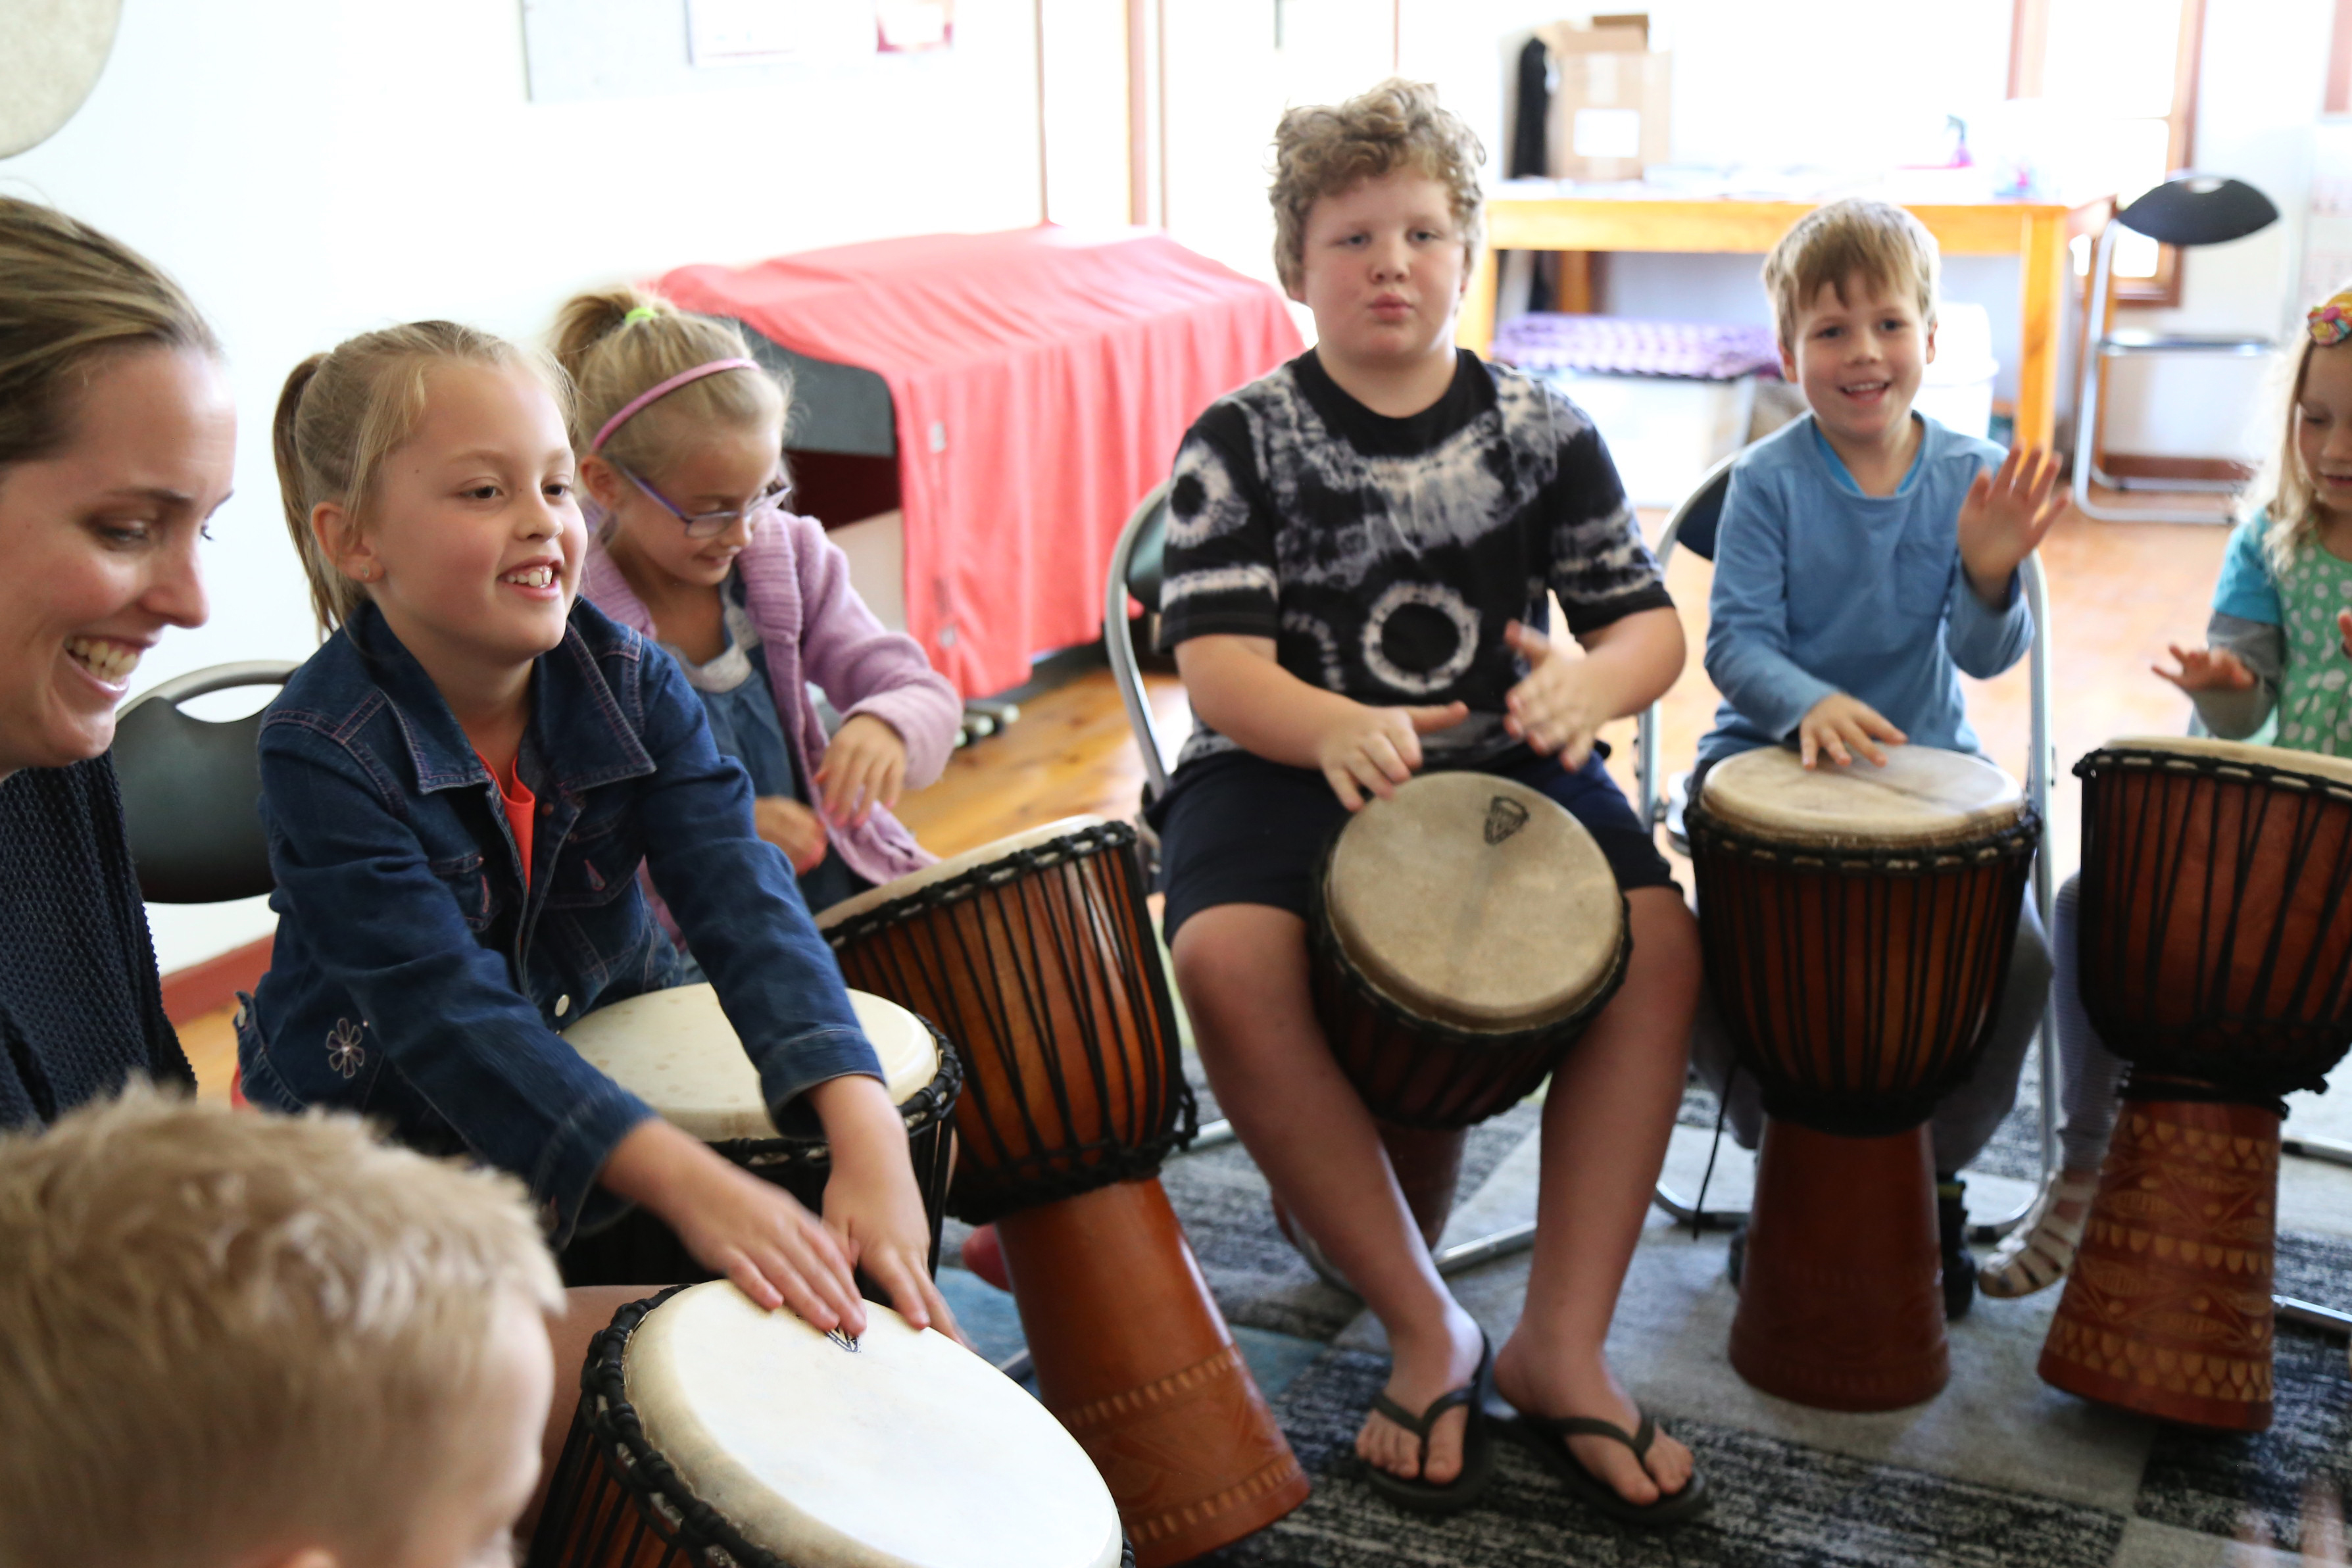 School Holiday Drumming Workshop for 5-10 year olds